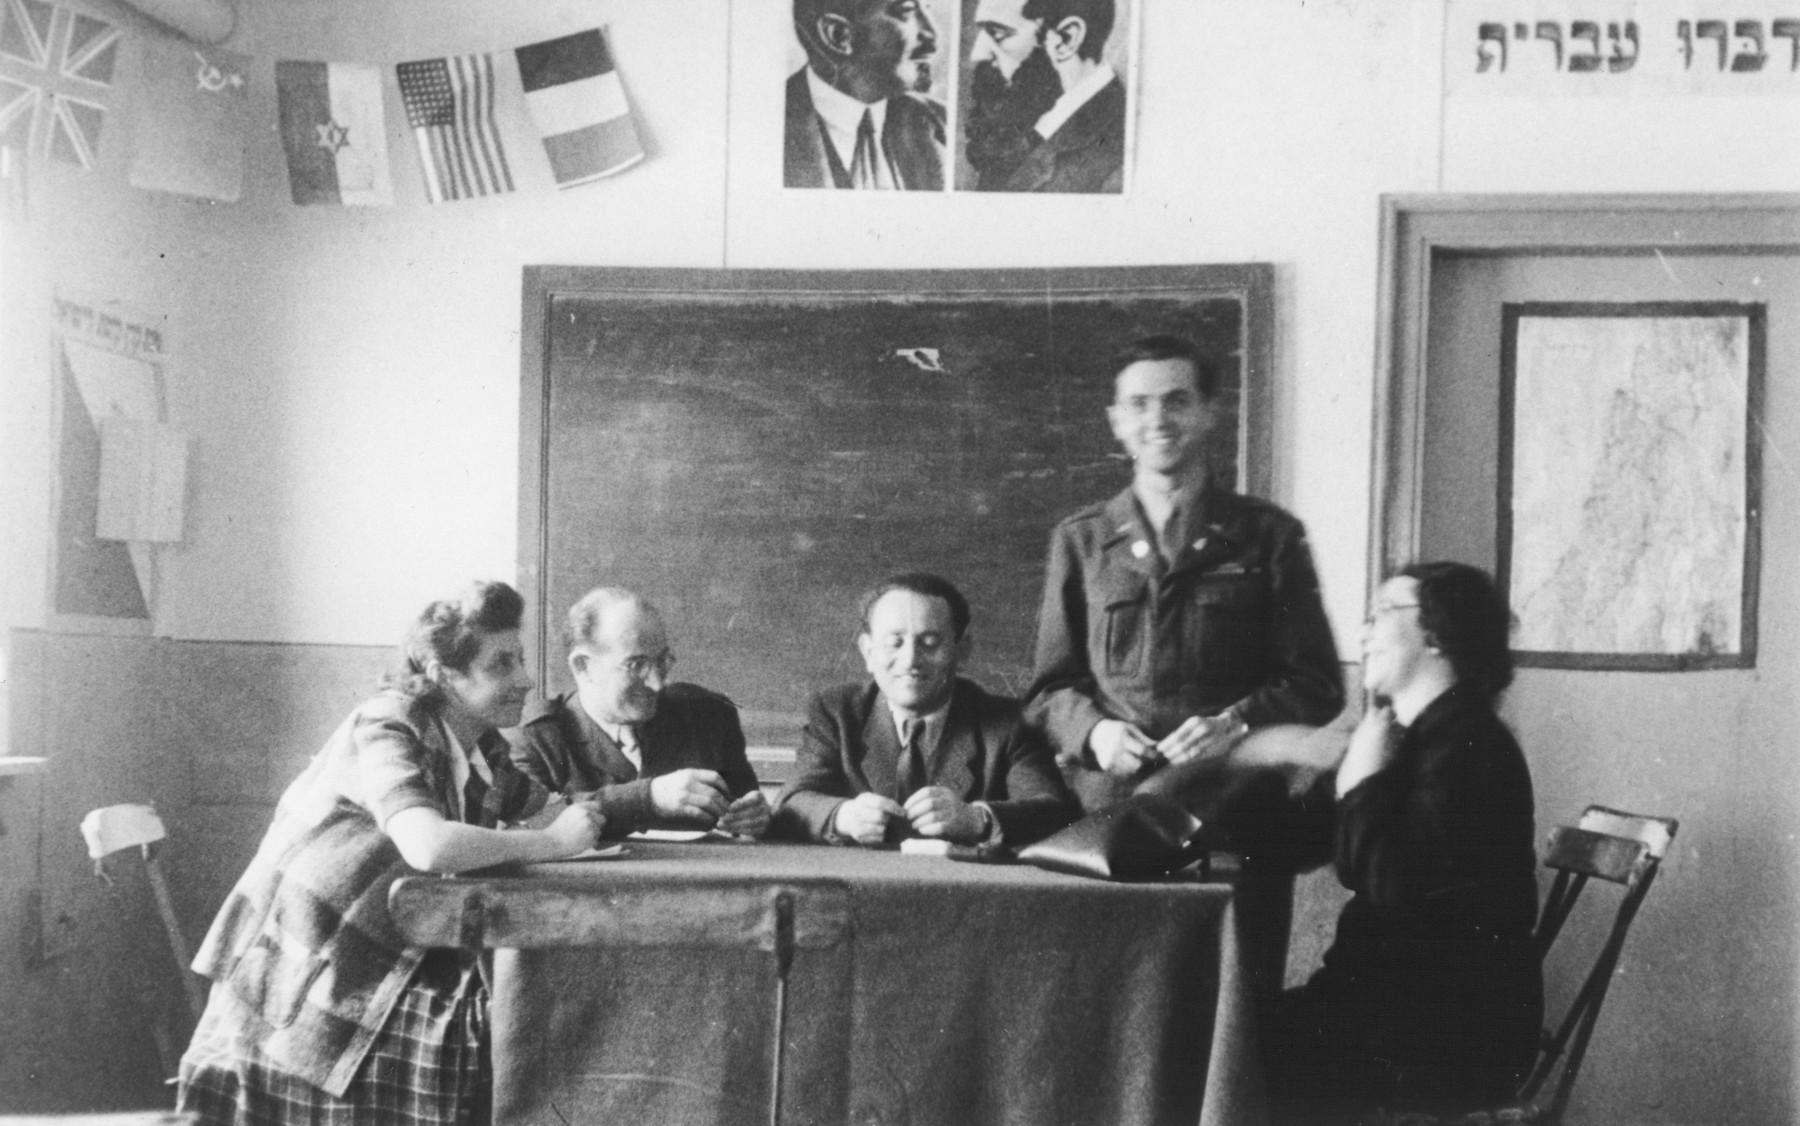 """U.S. Army chaplain Rabbi Mayer Abramowitz meets with teachers of the Hebrew school he established at the Schlachtensee displaced persons camp.  The sign on the wall reads, """"Speak Hebrew."""" Above the blackboard are portraits of Theodor Herzl and Chaim Weitzmann."""